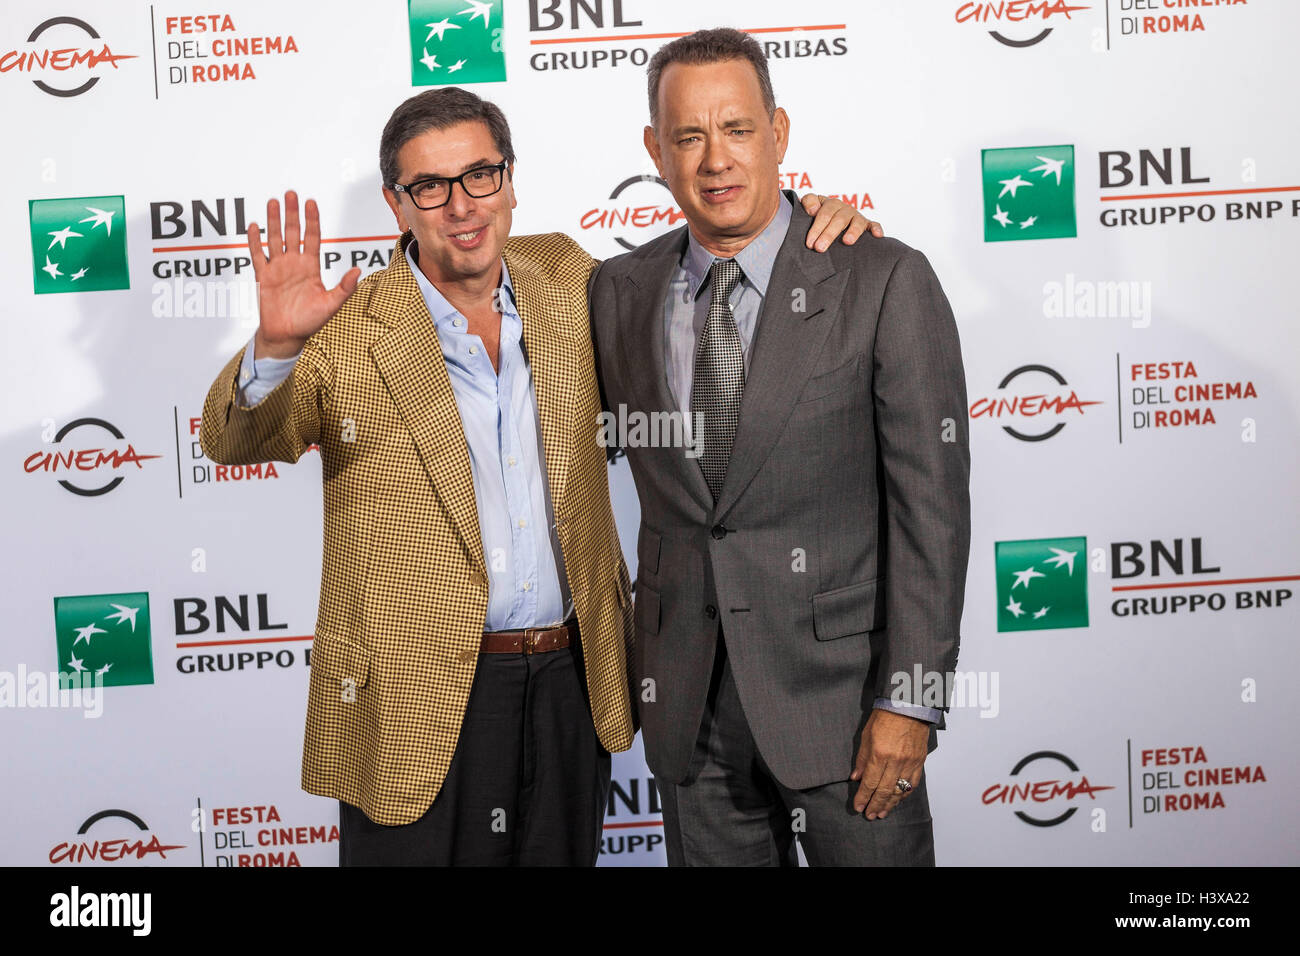 Rome, Italy. 13th October, 2016. Tom Hanks attends a photocall during the 11th International Rome Film Festival. The 11th Rome Film Festival will be held from 13th to 23rd October 2016 at the Auditorium Parco della Musica and in other venues throughout the city. The event hosts a large and challenging programme of screenings, master classes, tributes, retrospectives, panels, and special events. Credit:  Giuseppe Ciccia/Alamy Live News Stock Photo